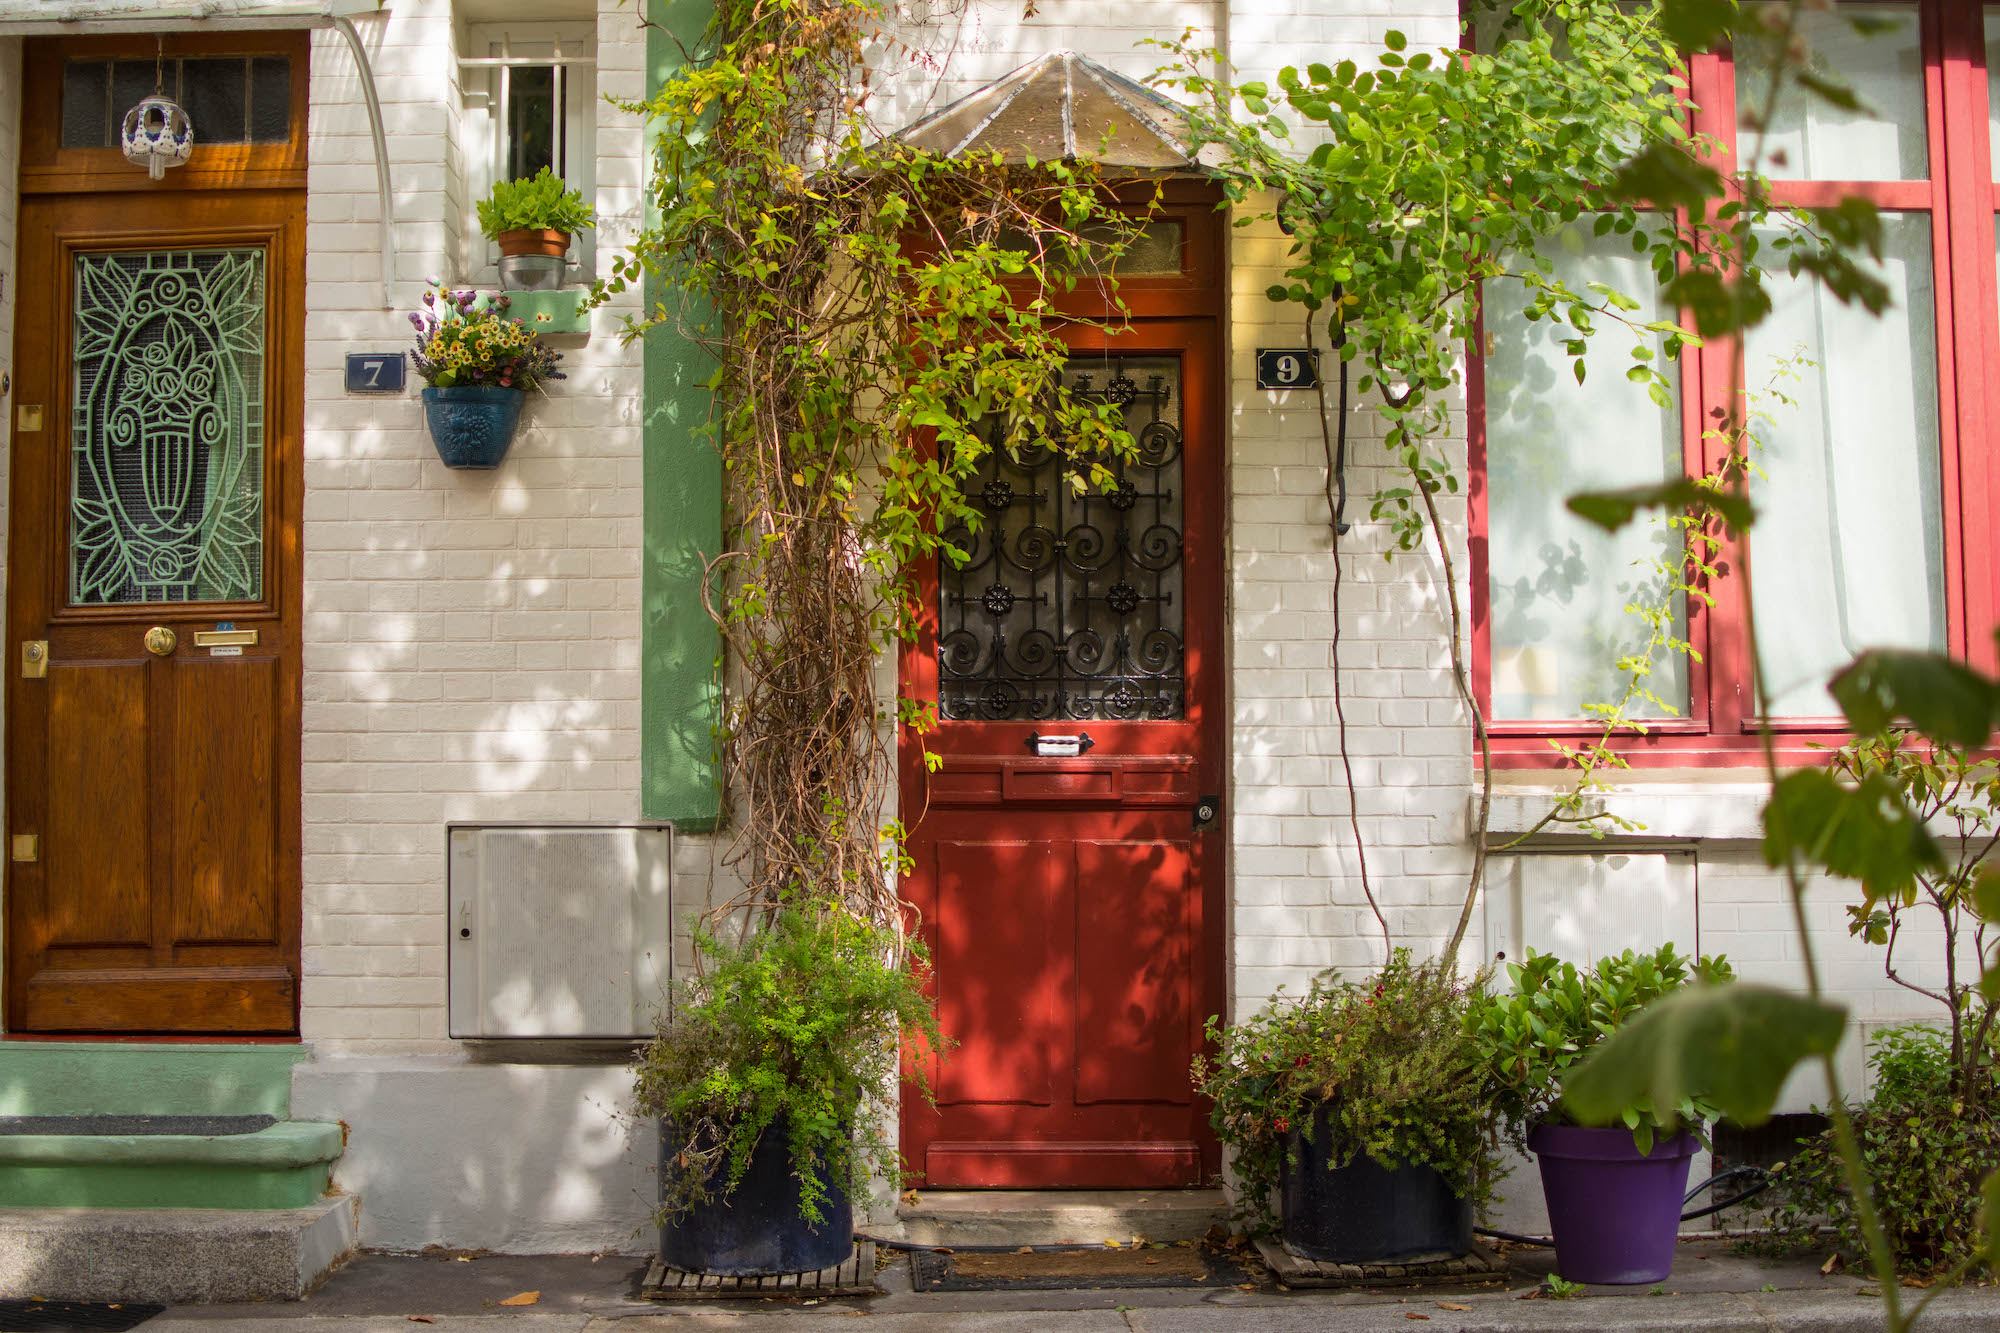 The Cité Florale, in the Butte-aux-Cailles neighborhood of Paris' 13th arrondissement, is filled with homes and potted plants spilling onto the tiny streets.